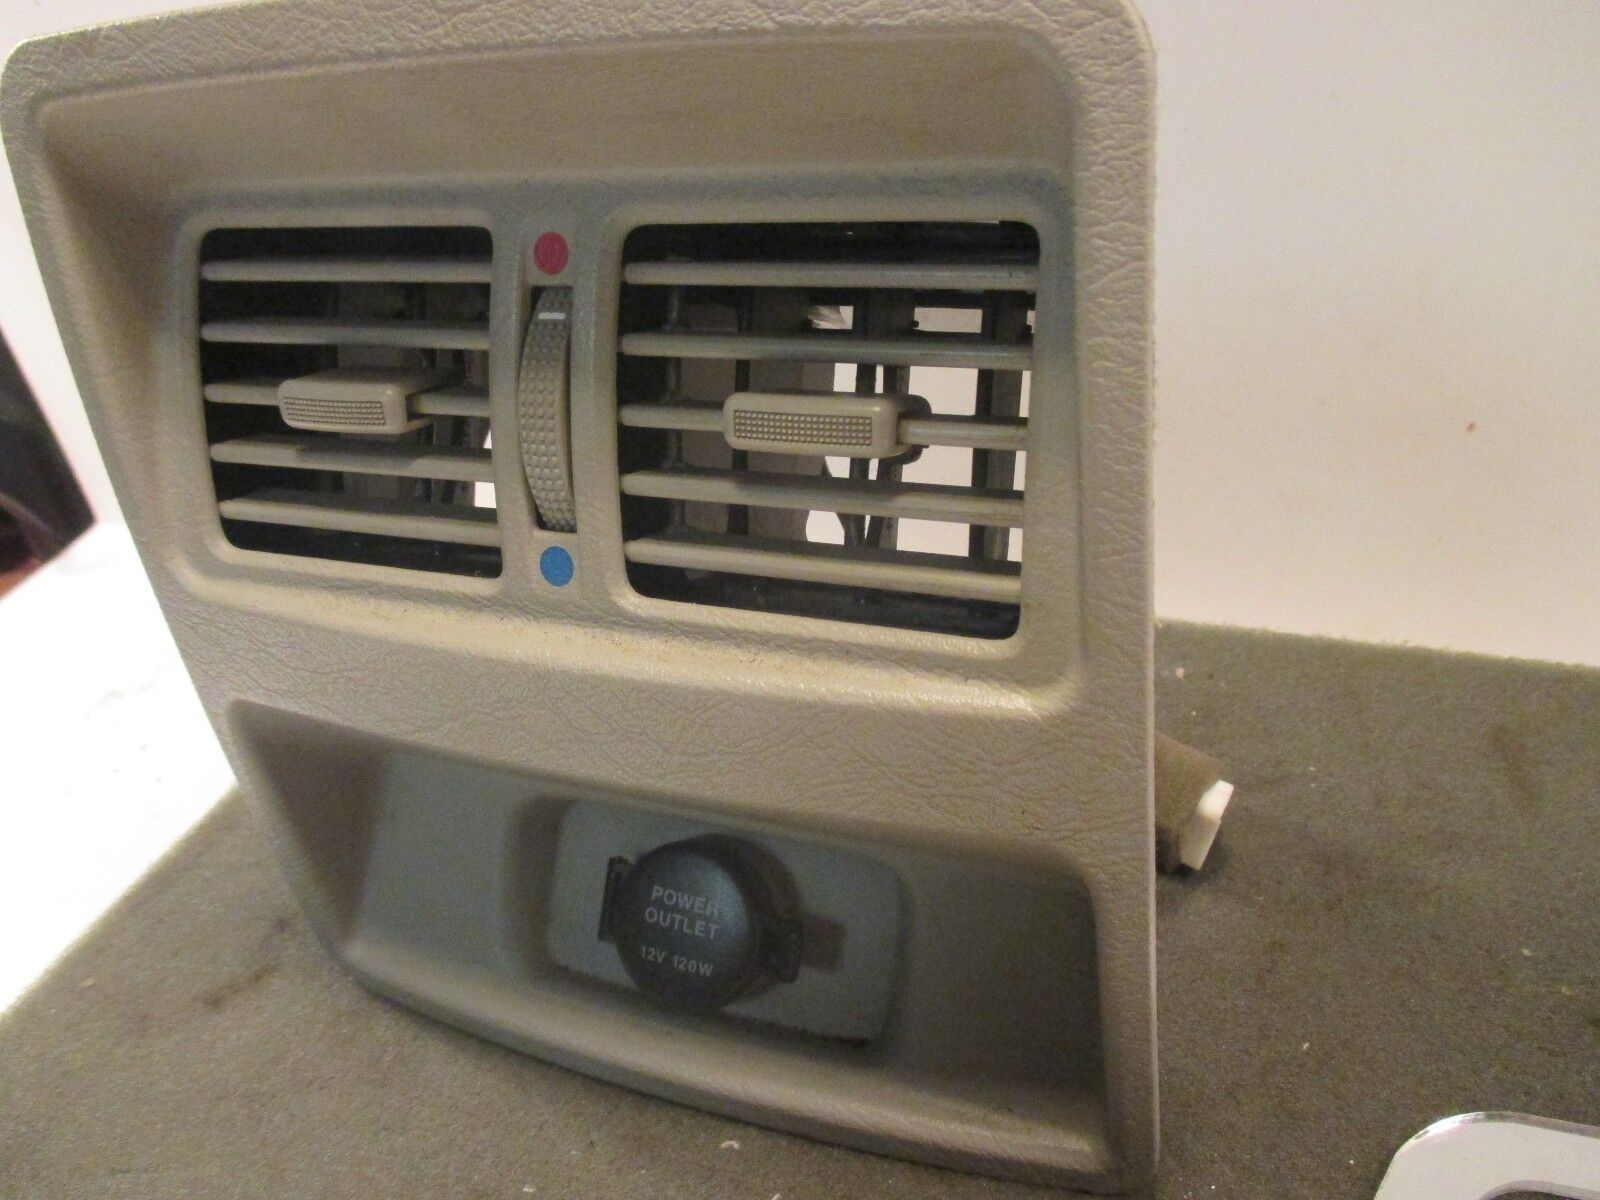 Used Kia Amanti Interior Parts For Sale 2005 Fuse Box 35l Rear Power Outlet Vent Panel